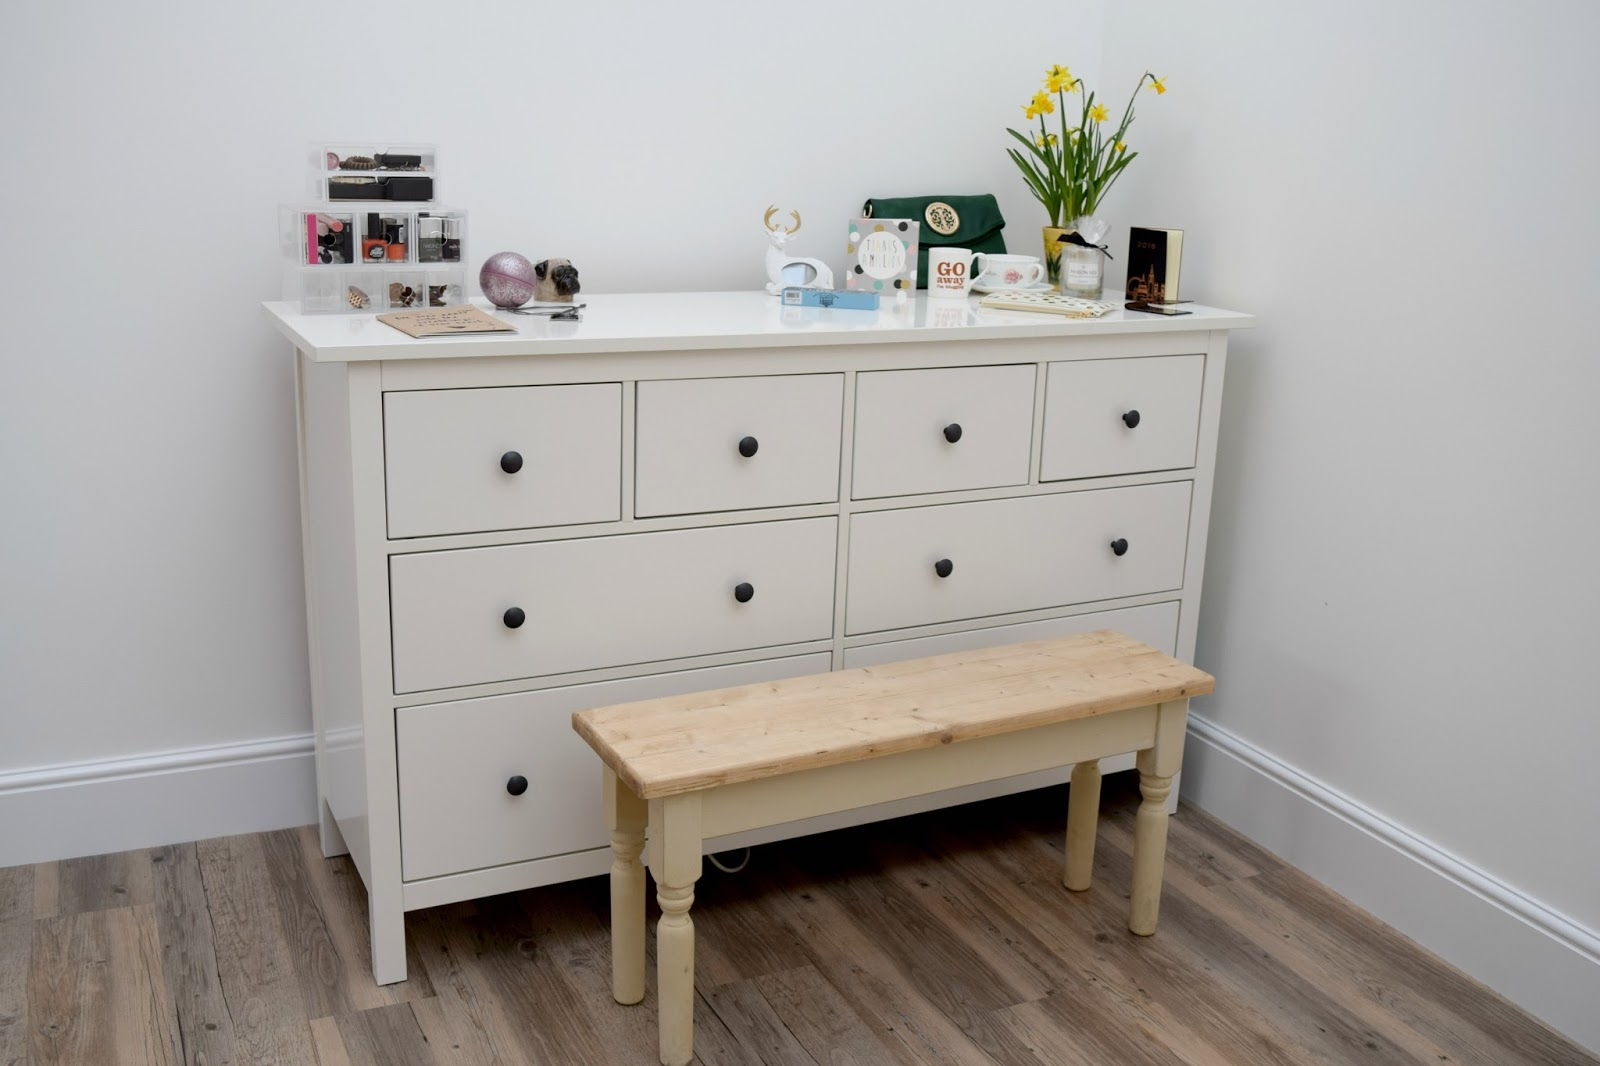 Ikea Hemnes Drawers in living area